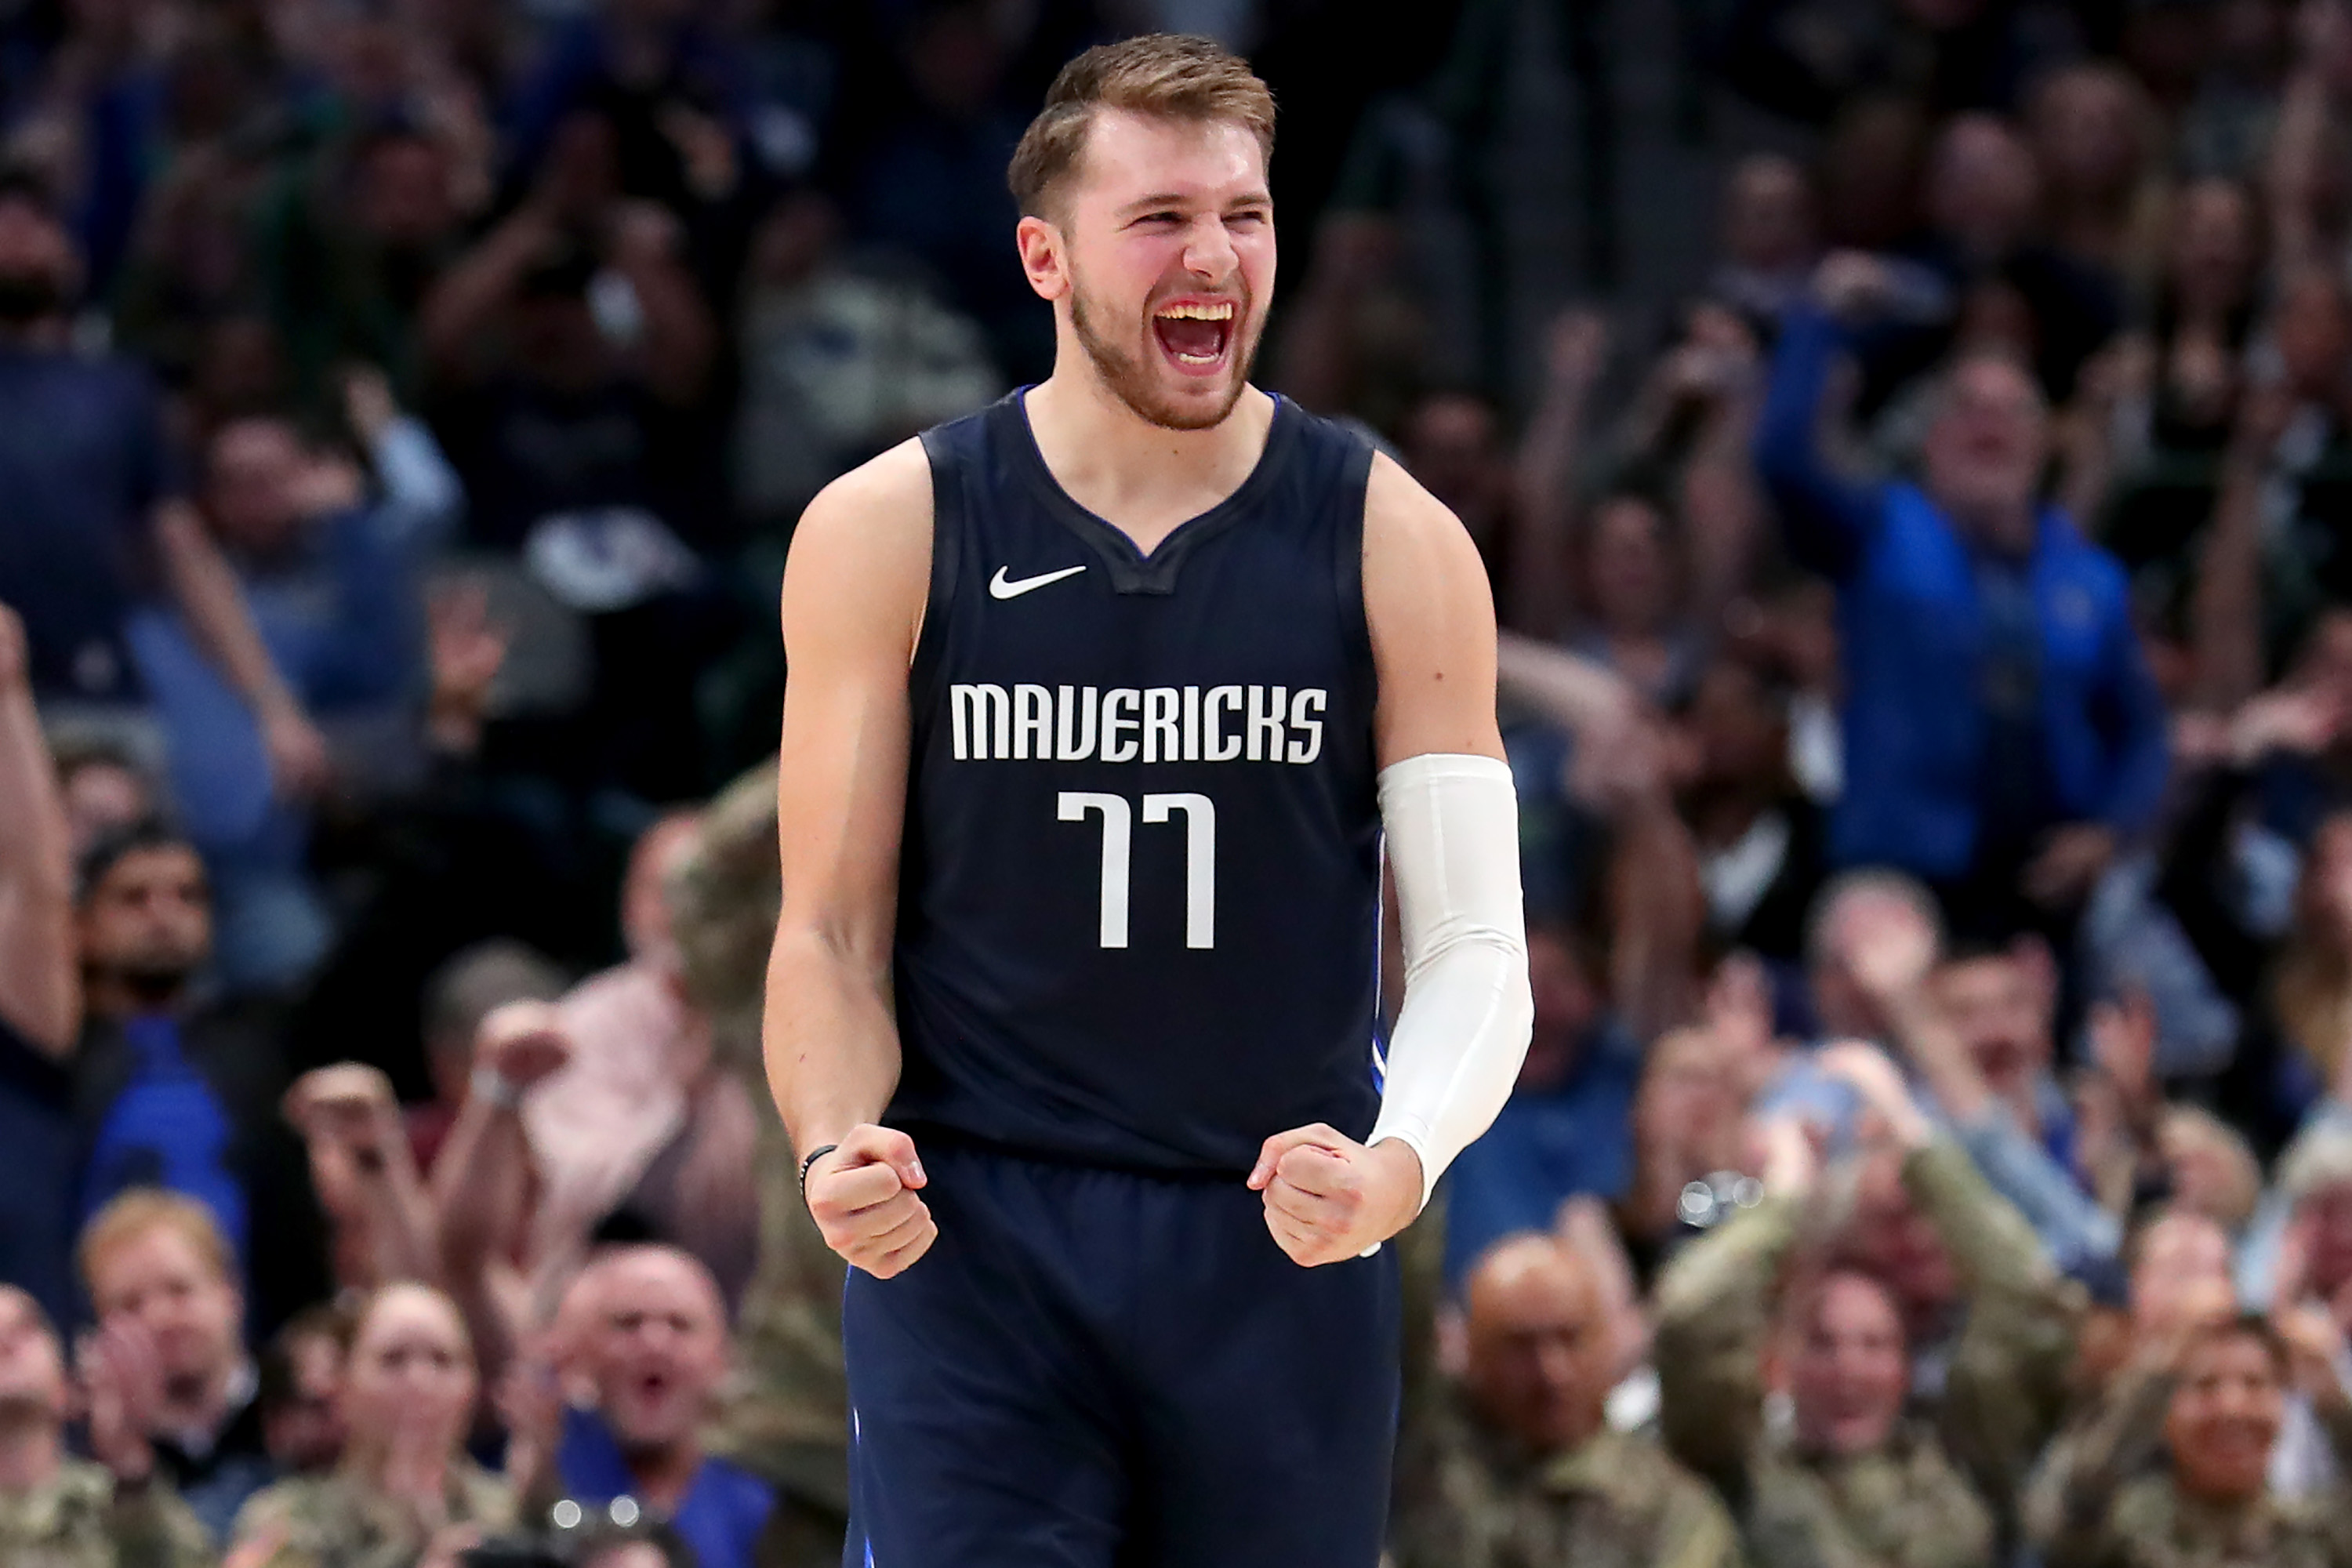 Luka Doncic celebrates after making a shot